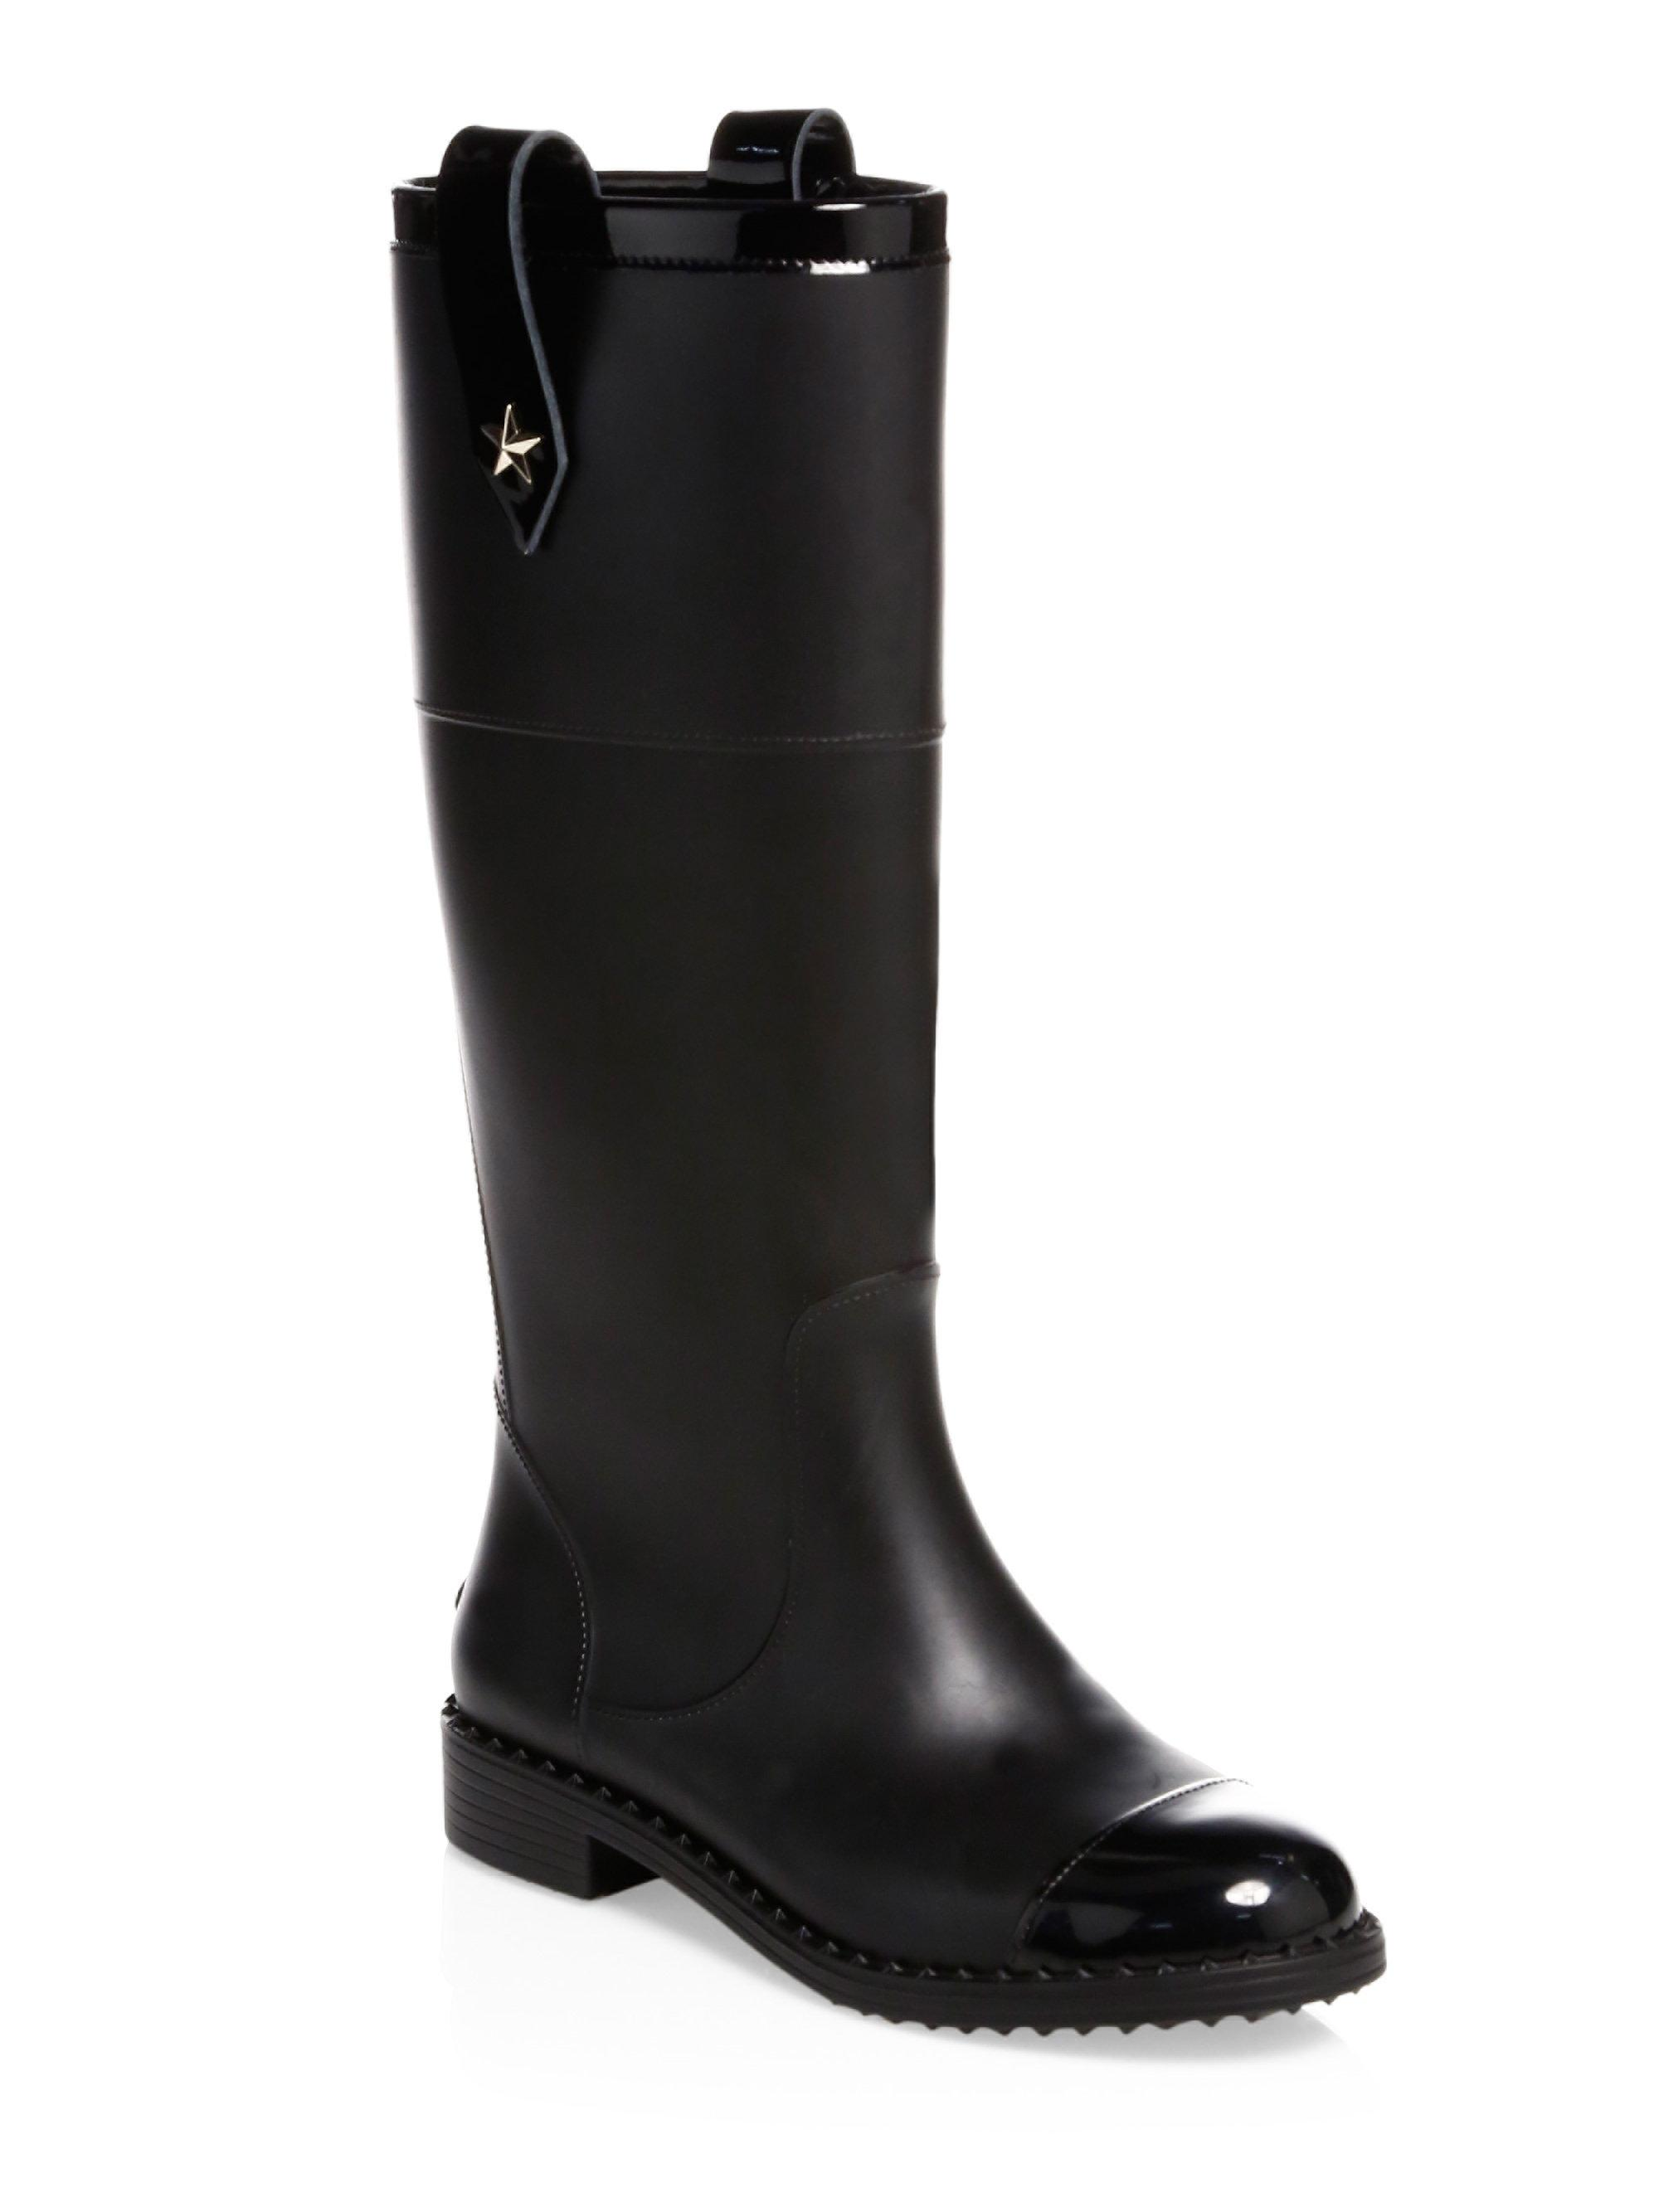 Jimmy choo Edith Knee-High Rubber Rainboots